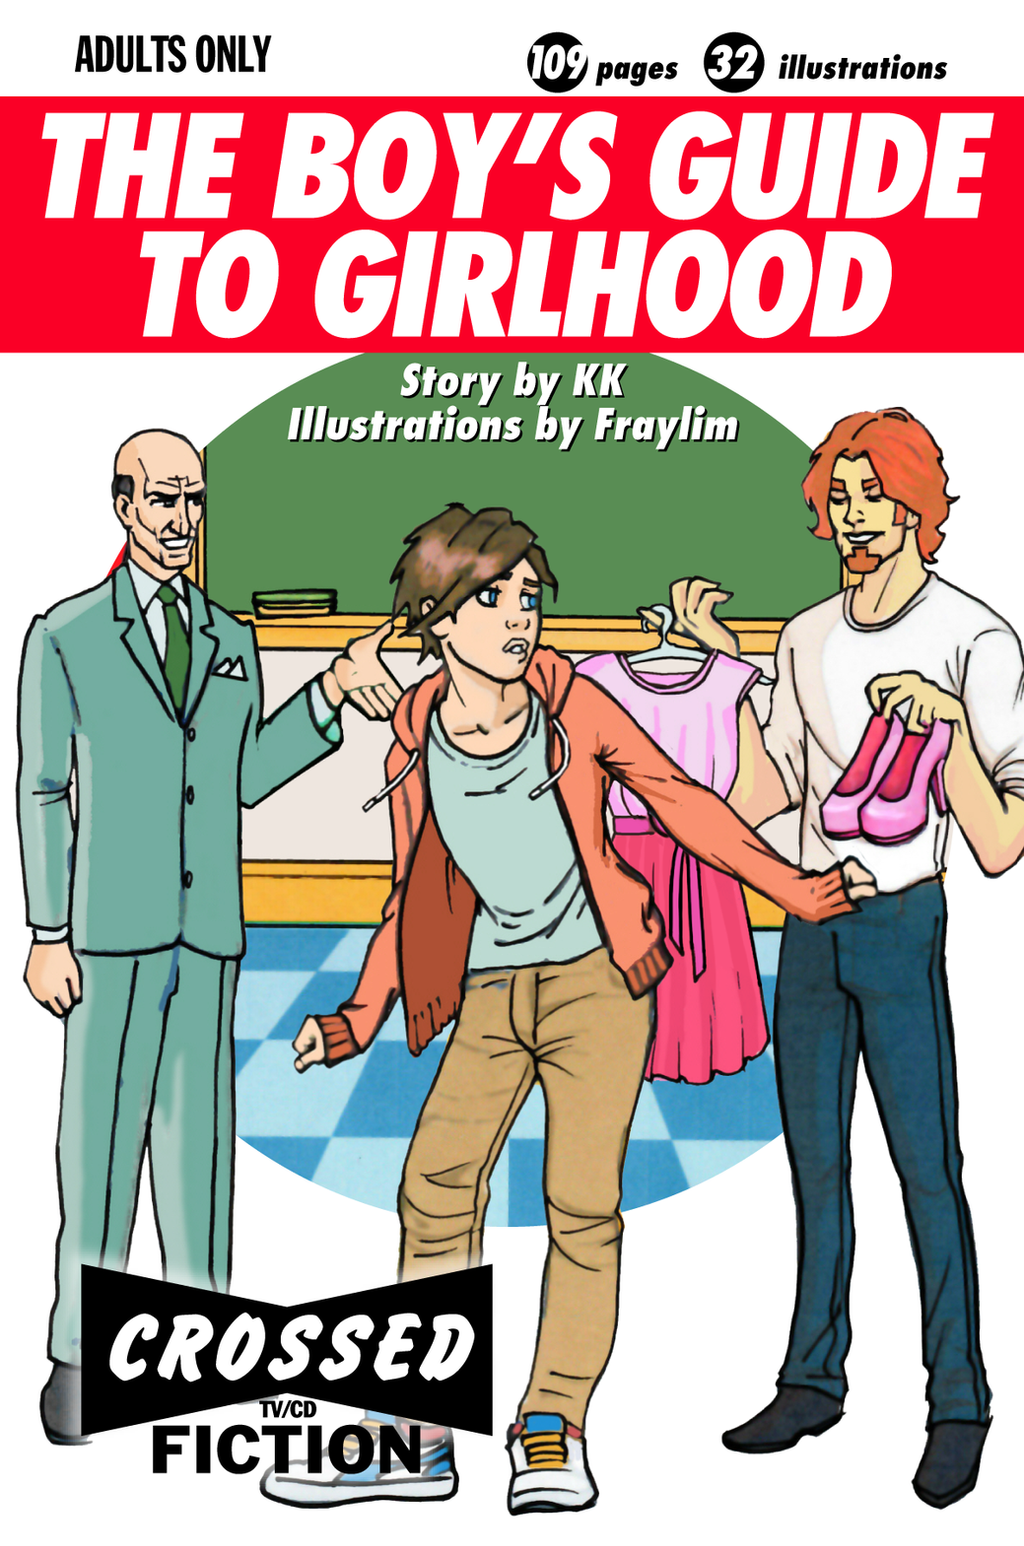 The Boy's Guide to Girlhood by JoeSixPack60 on DeviantArt